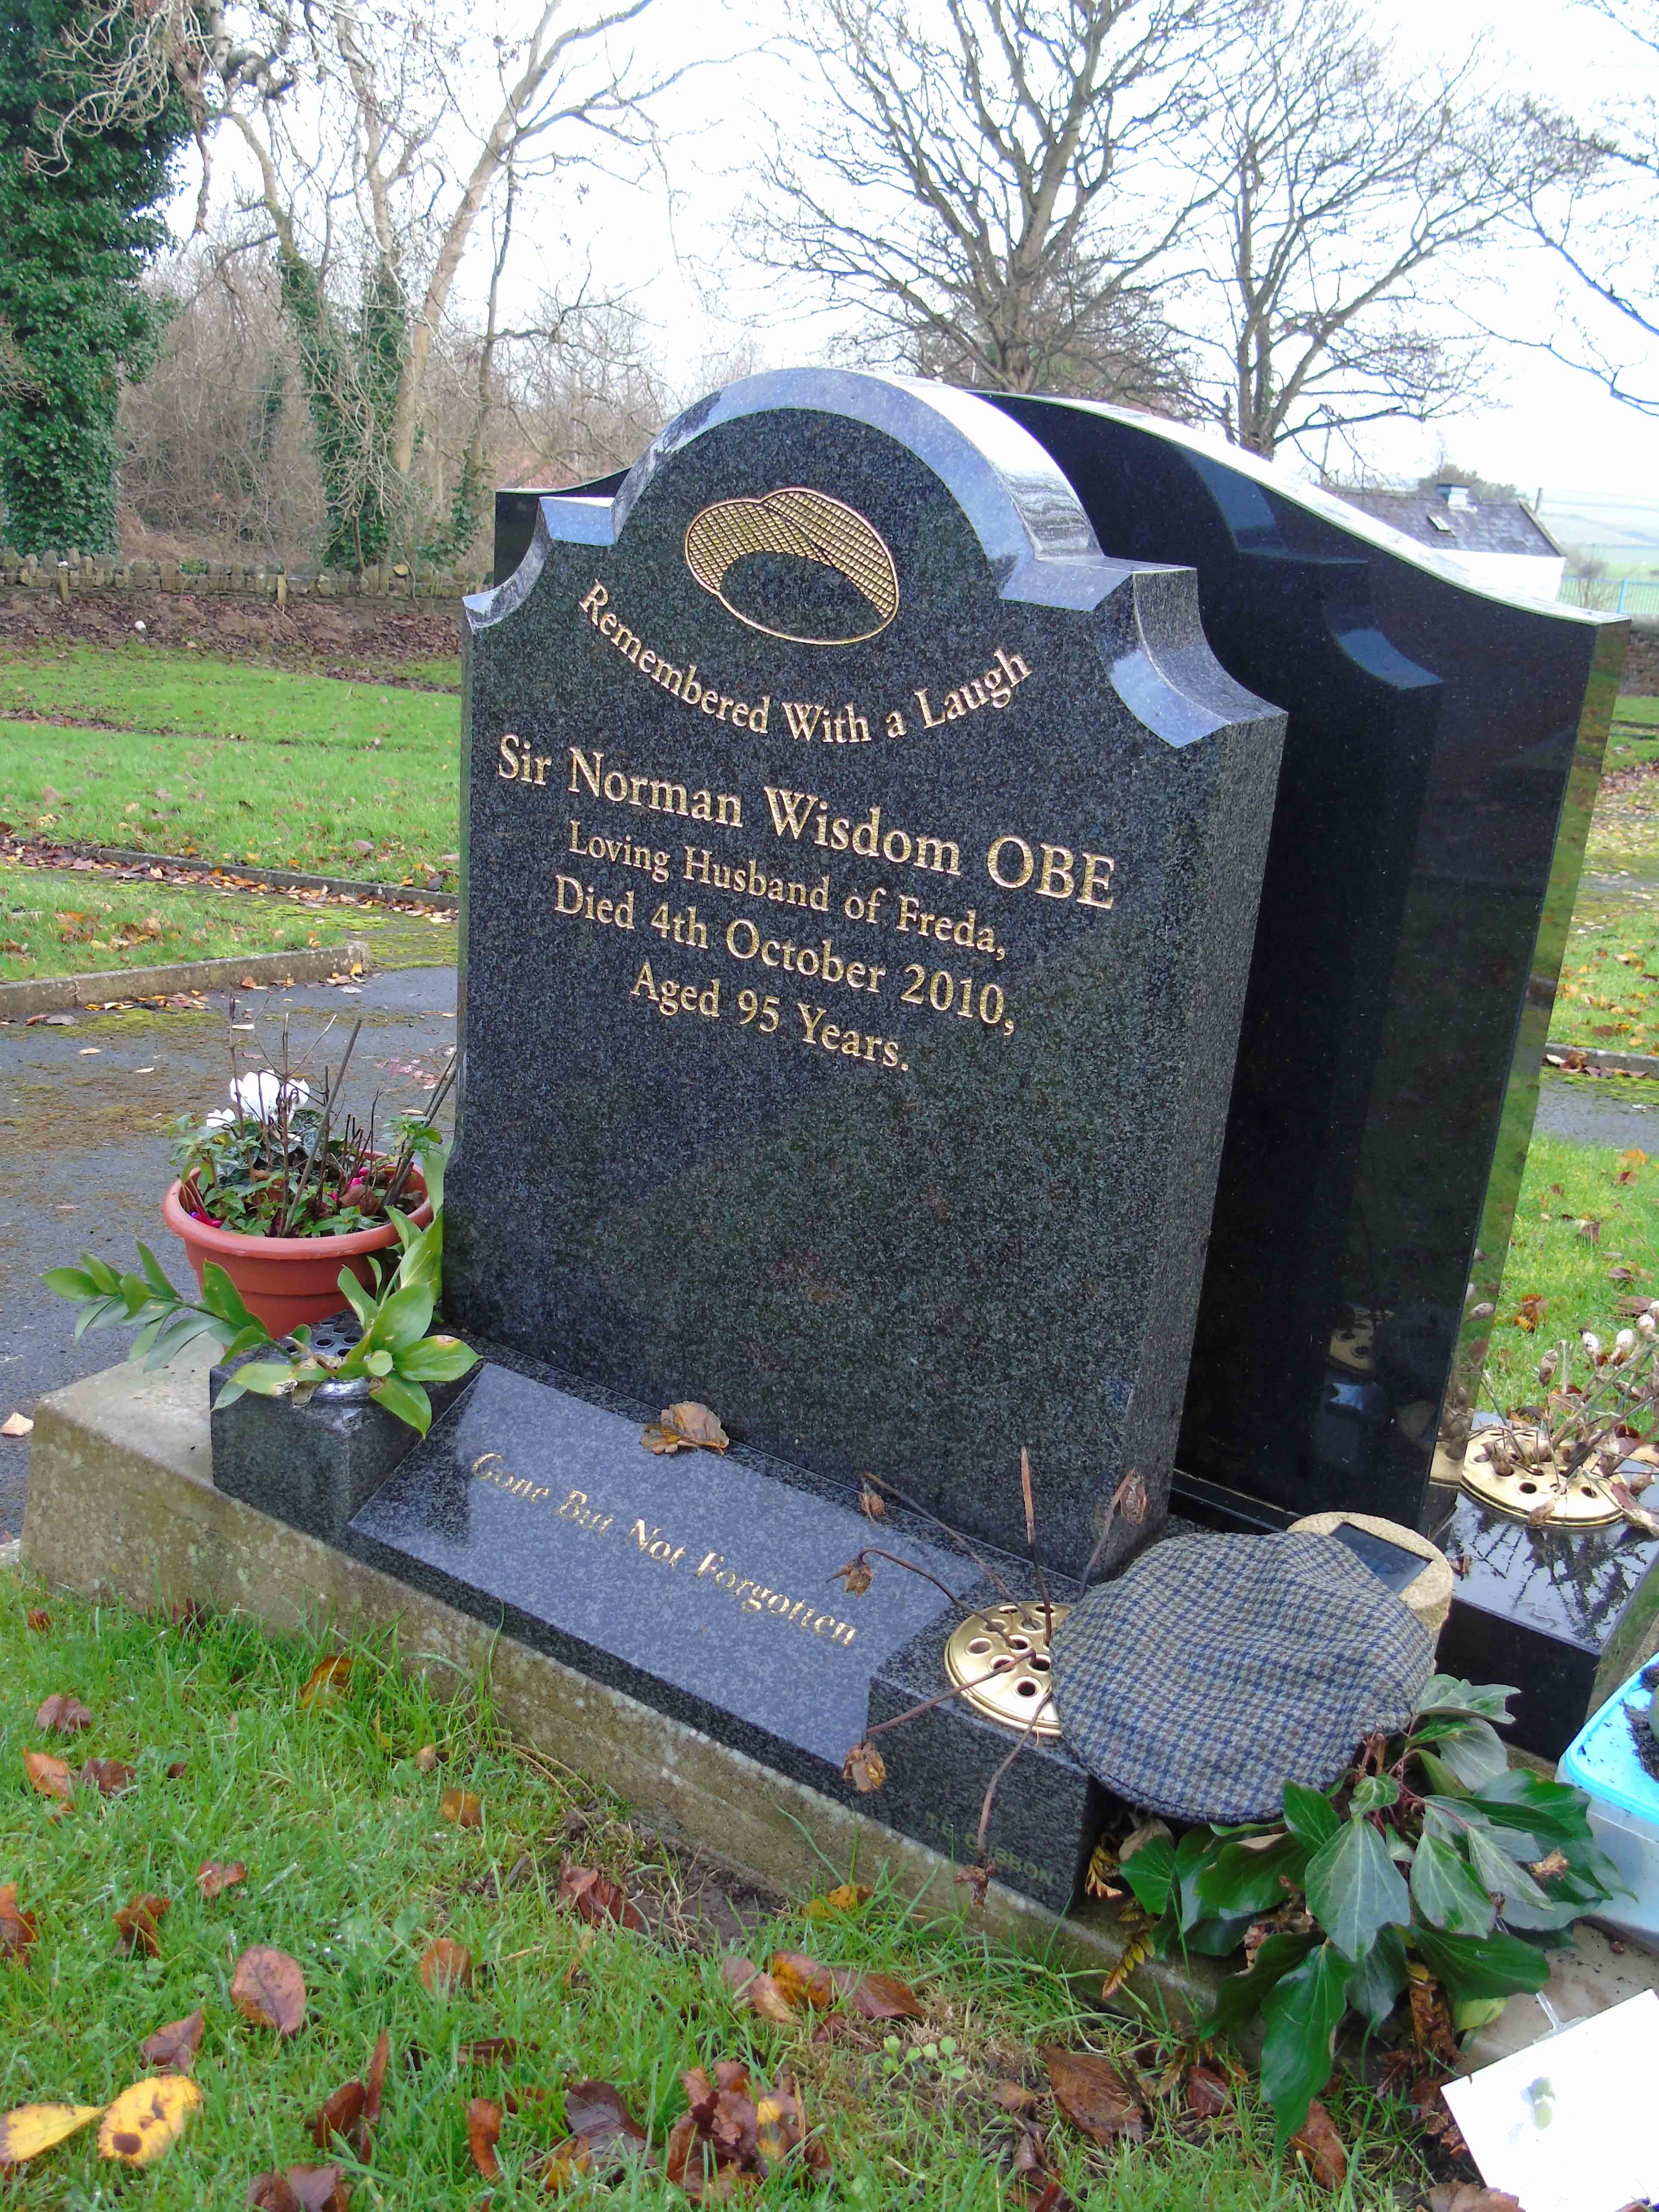 """Remembered With a Laugh"""" The Grave of Sir Norman Wisdom OBE ..."""